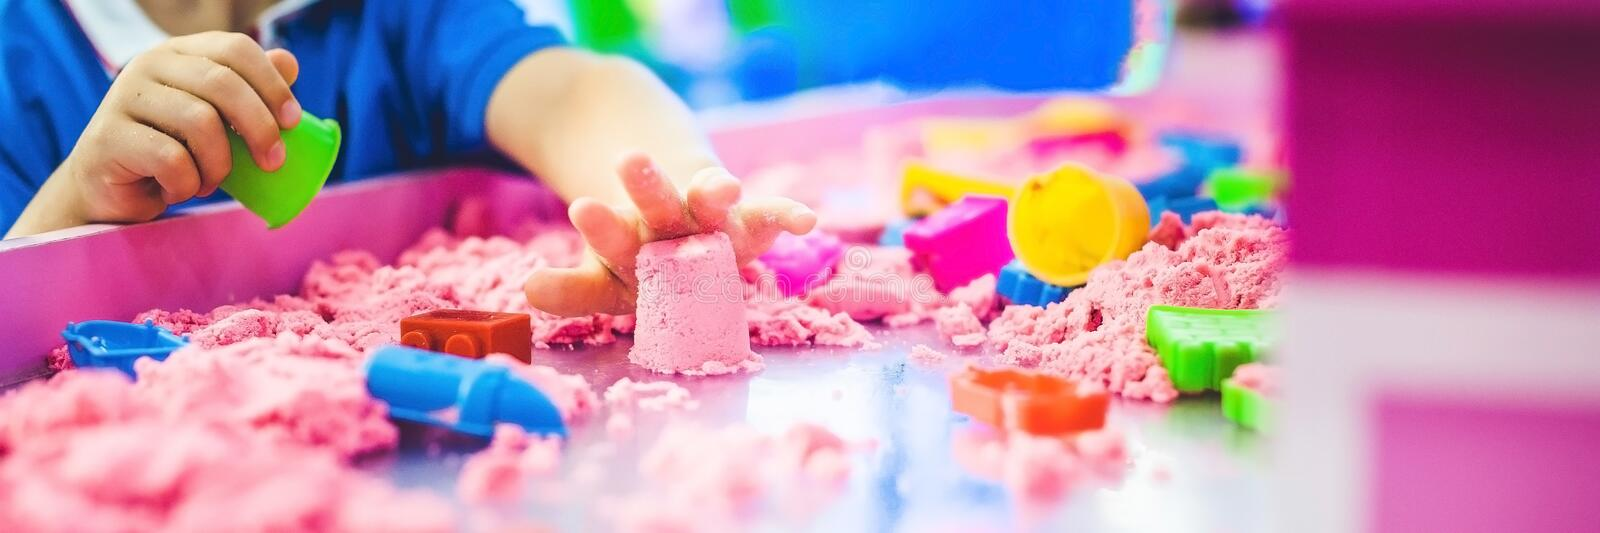 BANNER Boy playing with kinetic sand in preschool. The development of fine motor concept. Creativity Game concept. Long Format.  royalty free stock image